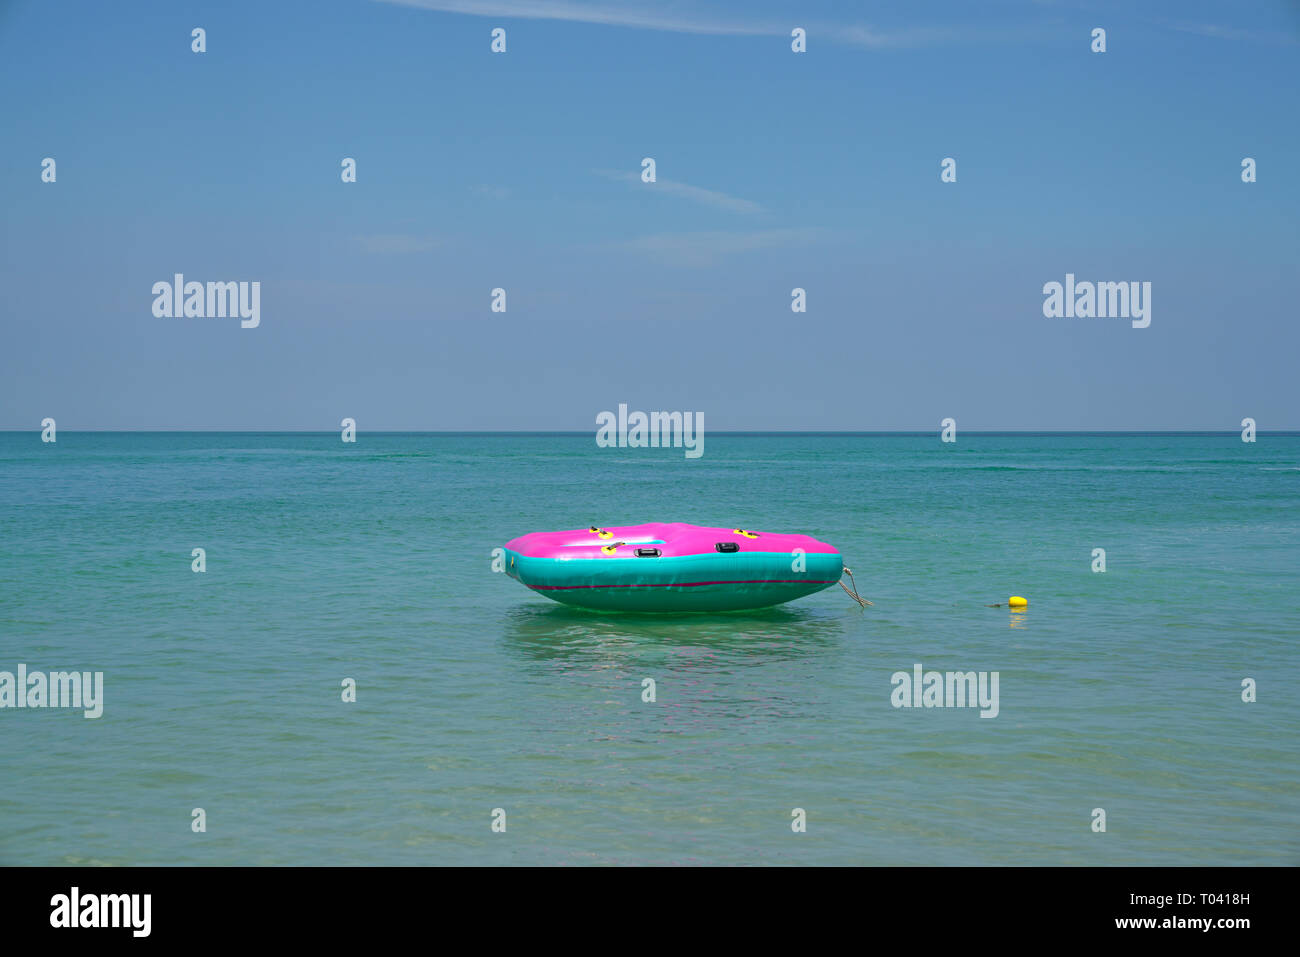 Summer or vacation concept, Inflatable ring or lilo floating in the sea by the beach - Stock Image